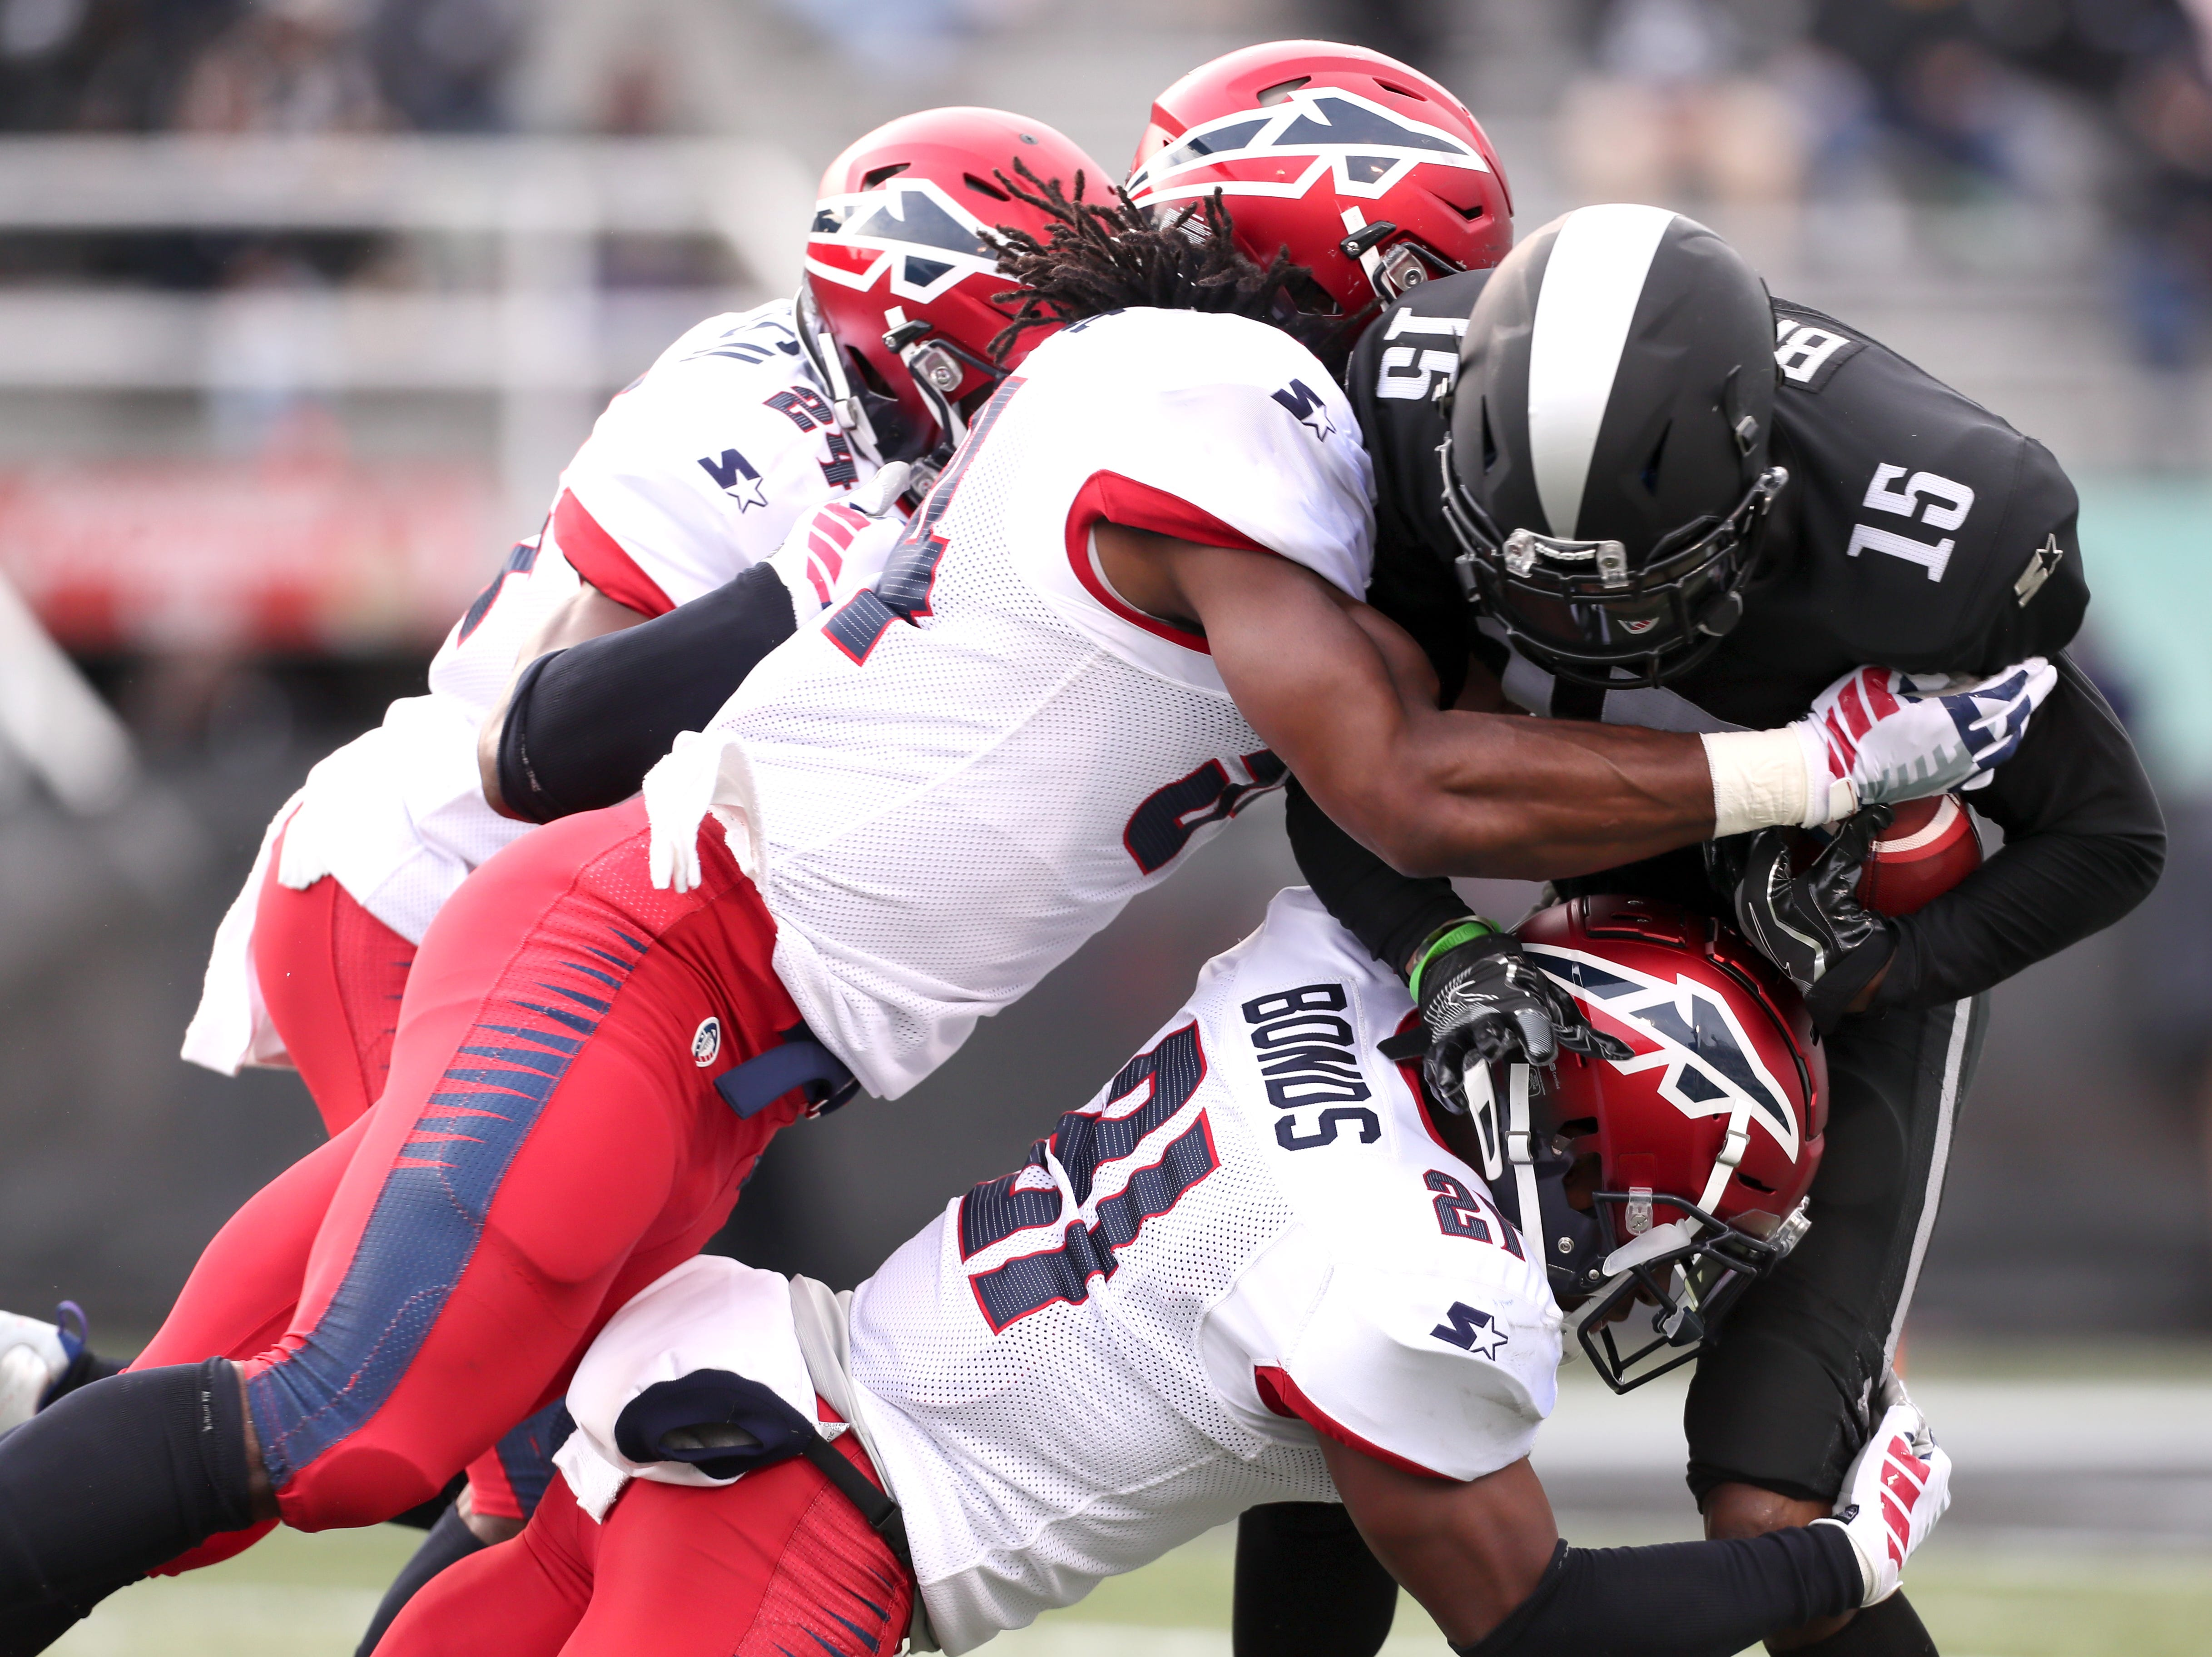 Birmingham Iron wide receiver Quan Bray is gang-tackled by Memphis Express defenders, including Charles James II, from top, Quentin Gause and Terrell Bonds during their game at Legion Field in Birmingham, Ala. on Sunday, Feb. 10, 2019.